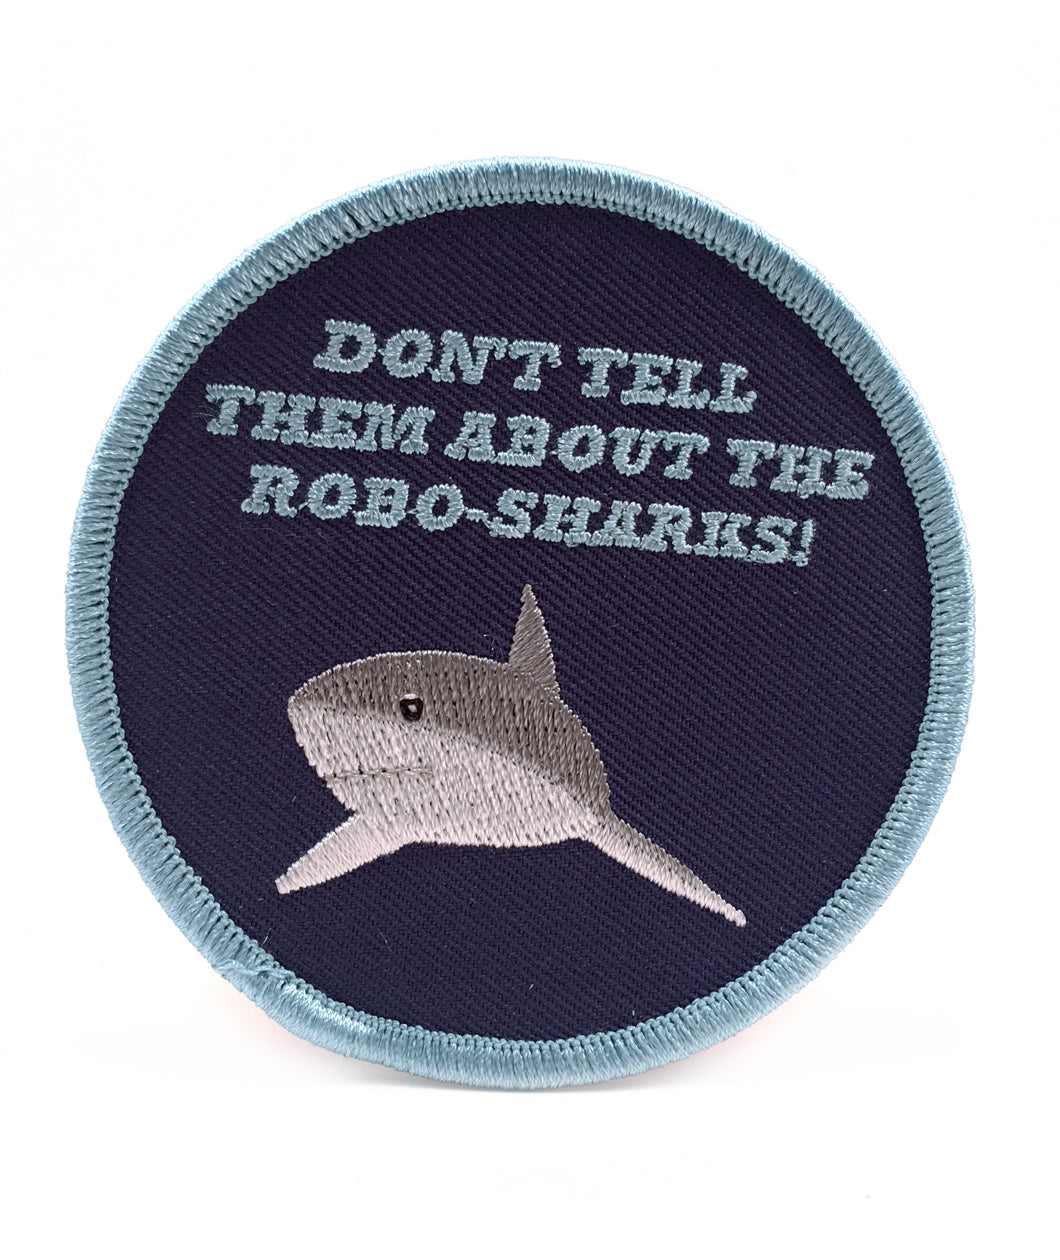 Robo Shark Patch